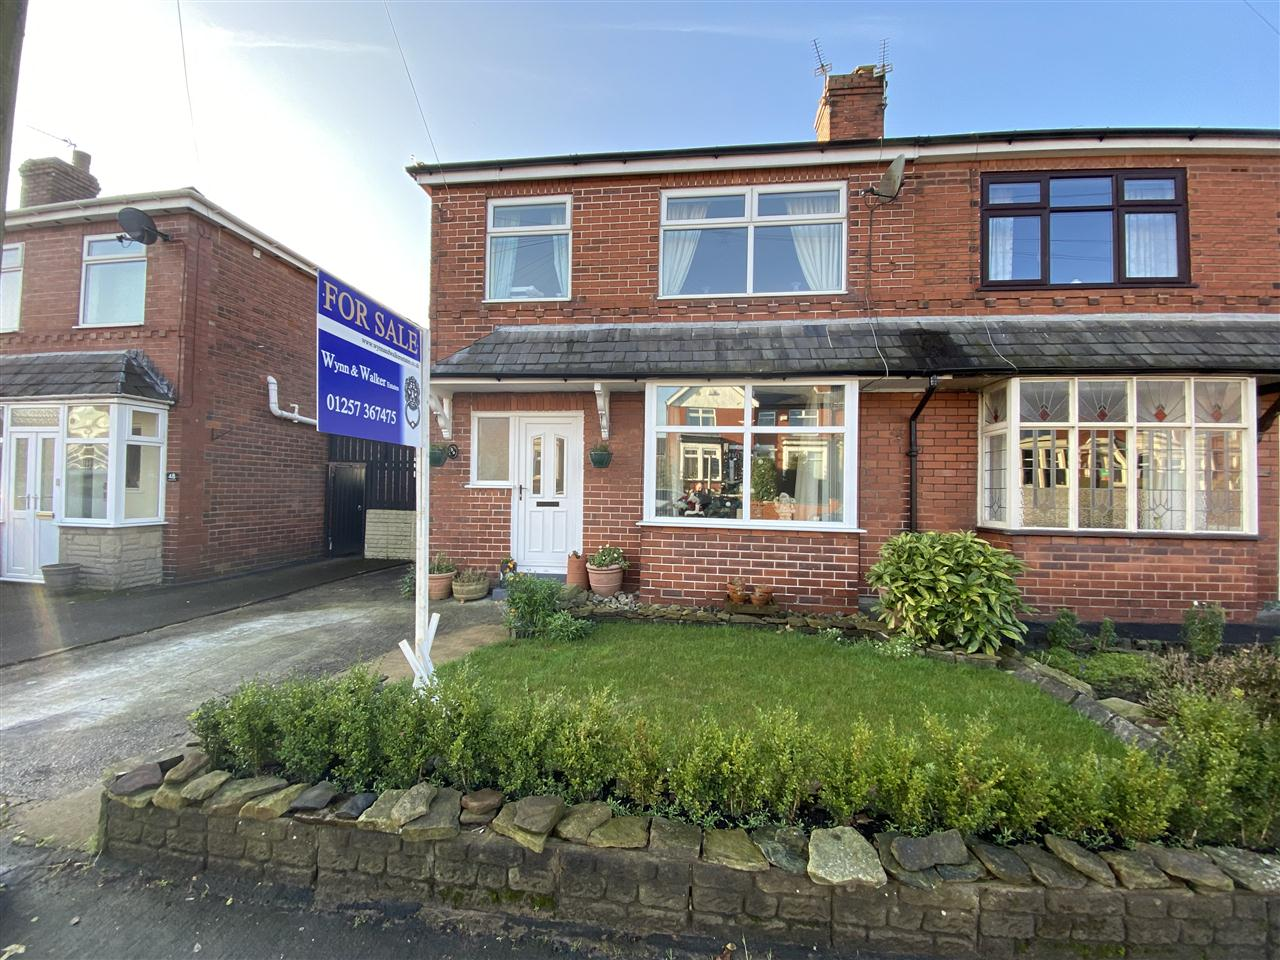 3 bed semi-detached for sale in Chorley Road, Heath Charnock, PR6